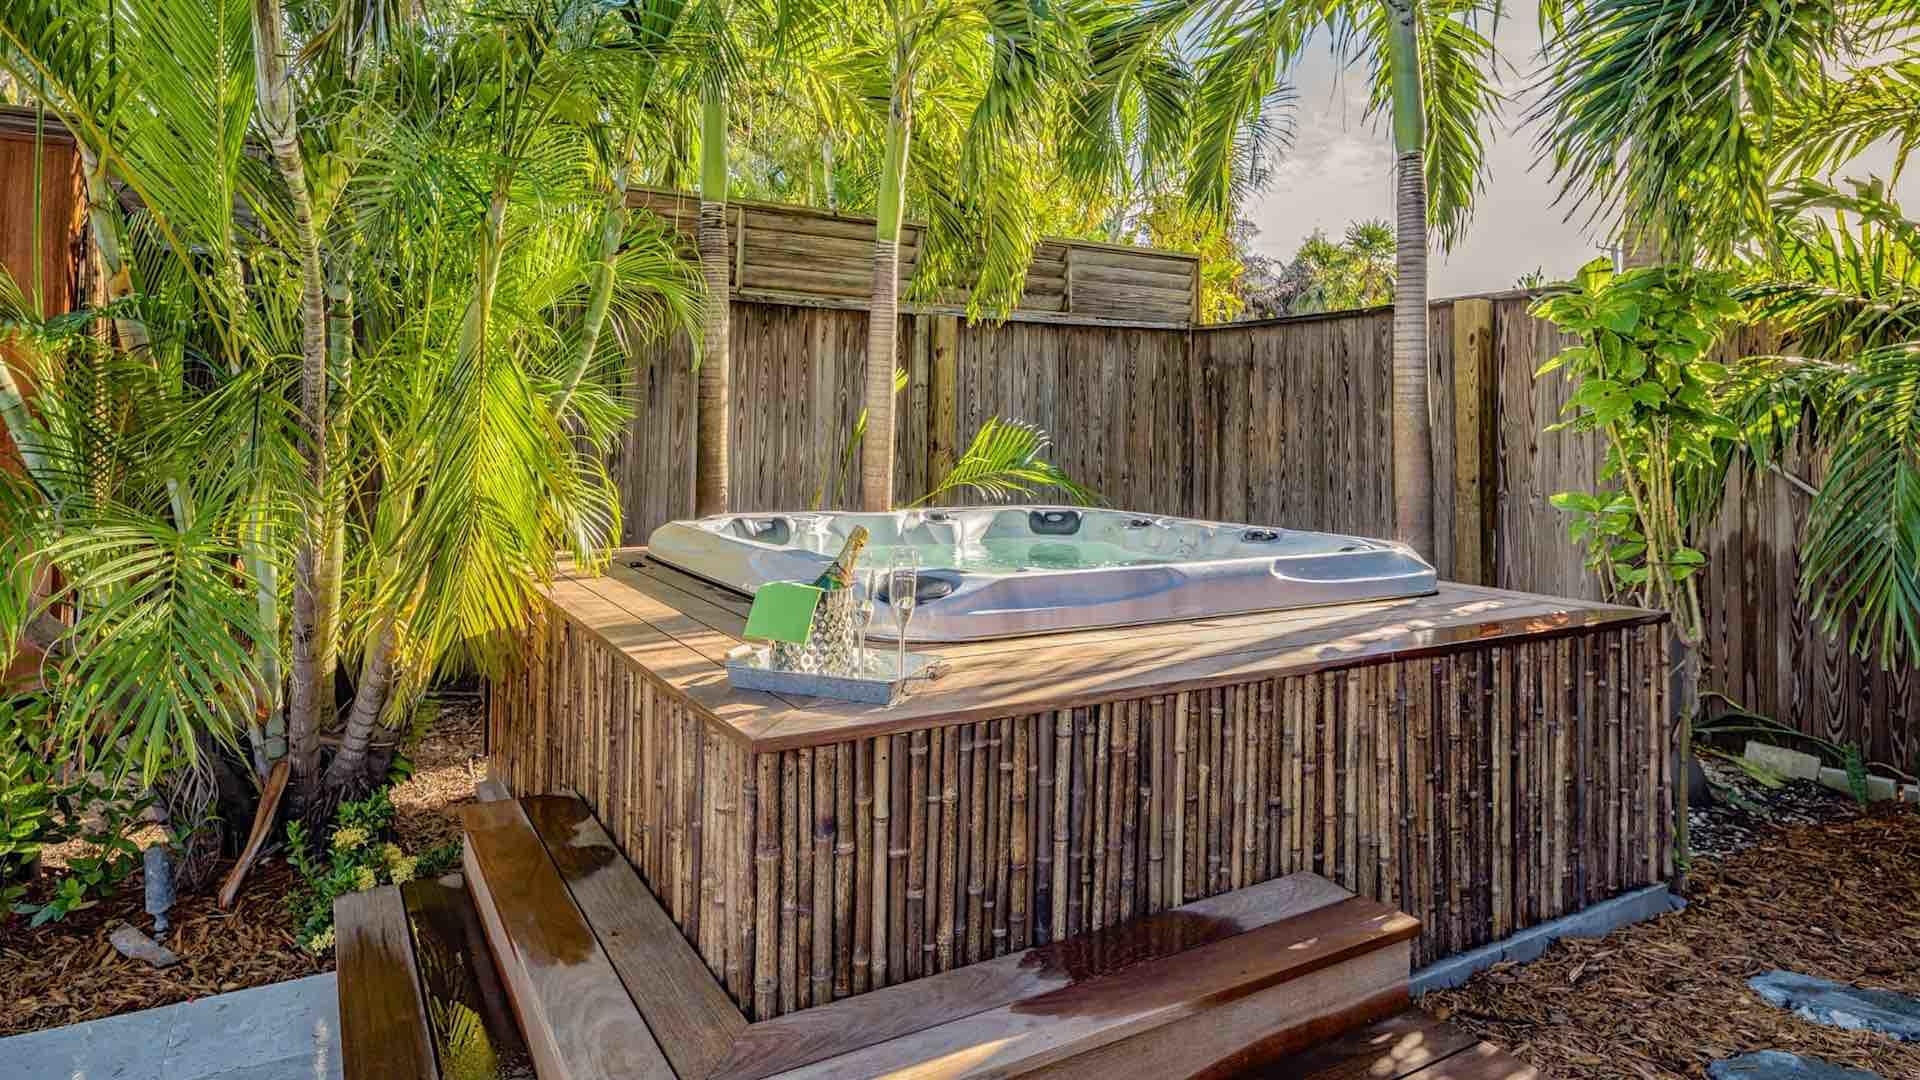 The lush landscaping surrounding the home provides plenty of privacy and reflects the tropical feeling...